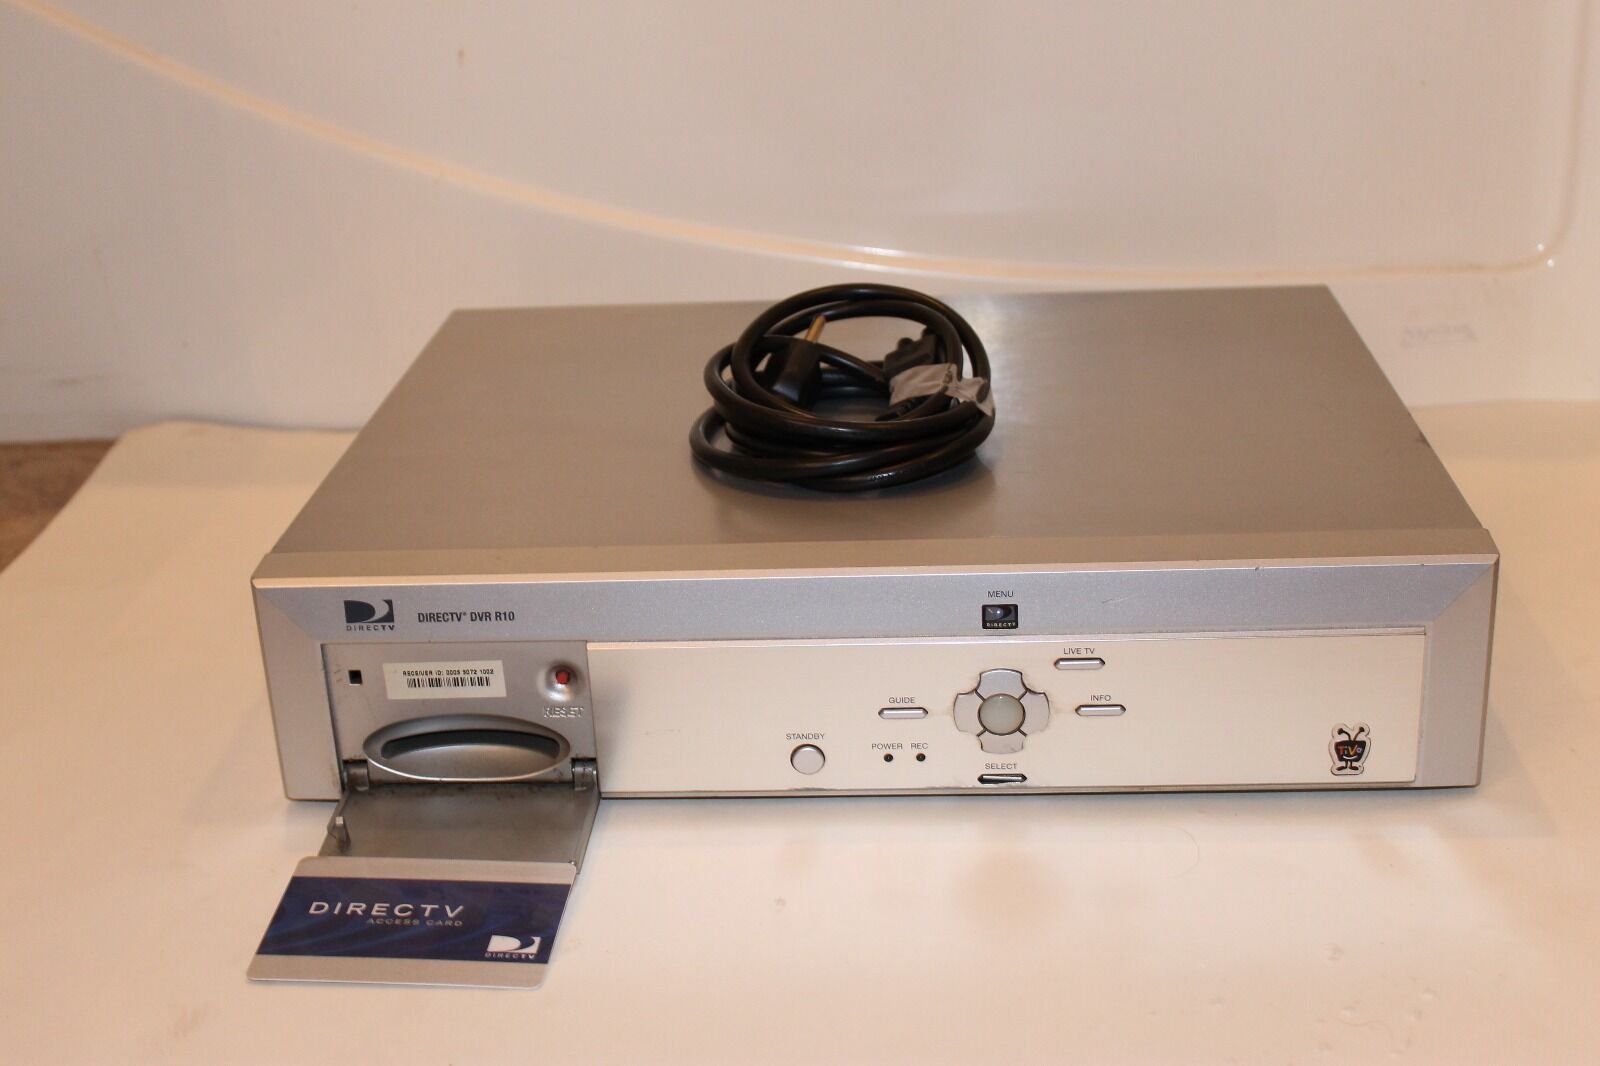 Direct Tv R10 Tivo Dvr 1 of 2 See More